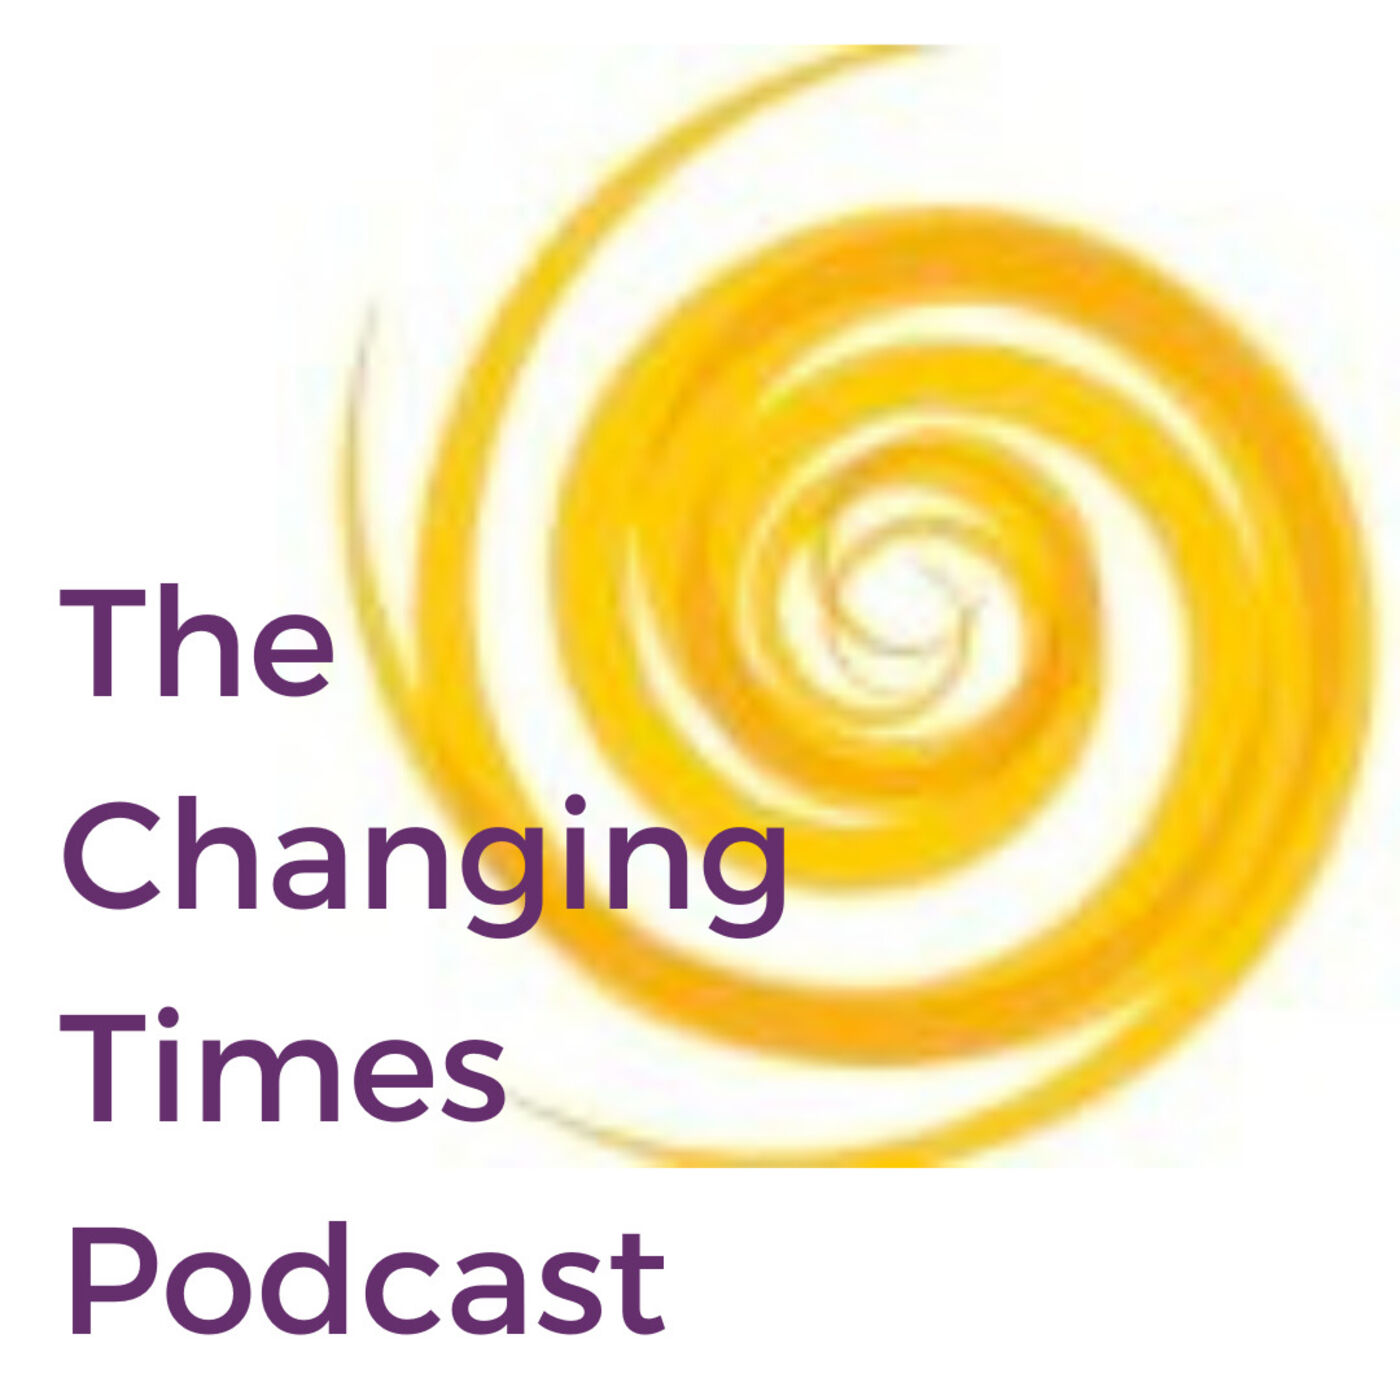 Welcome to The Changing Times Podcast!